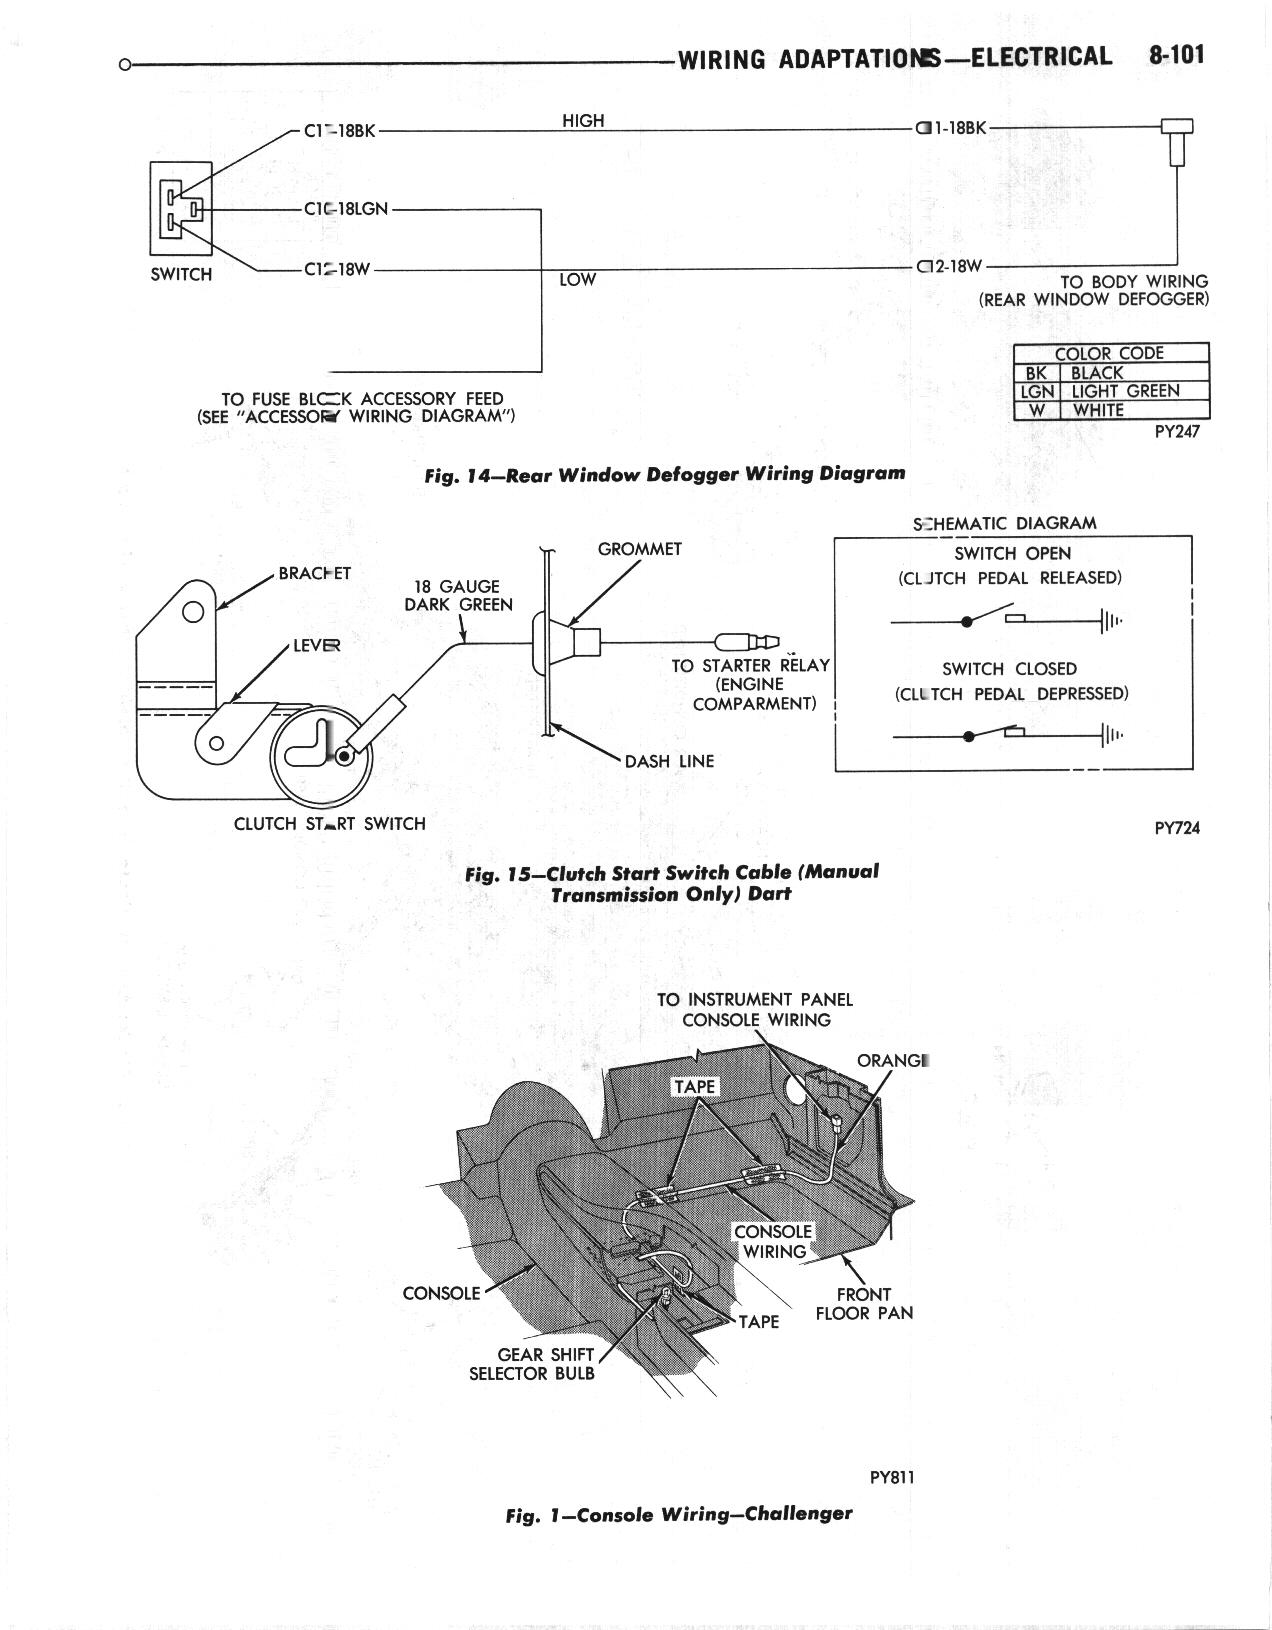 1970 Challenger Wiring Diagrams The Dodge Message Board Kib Panel Diagram Grp8 101